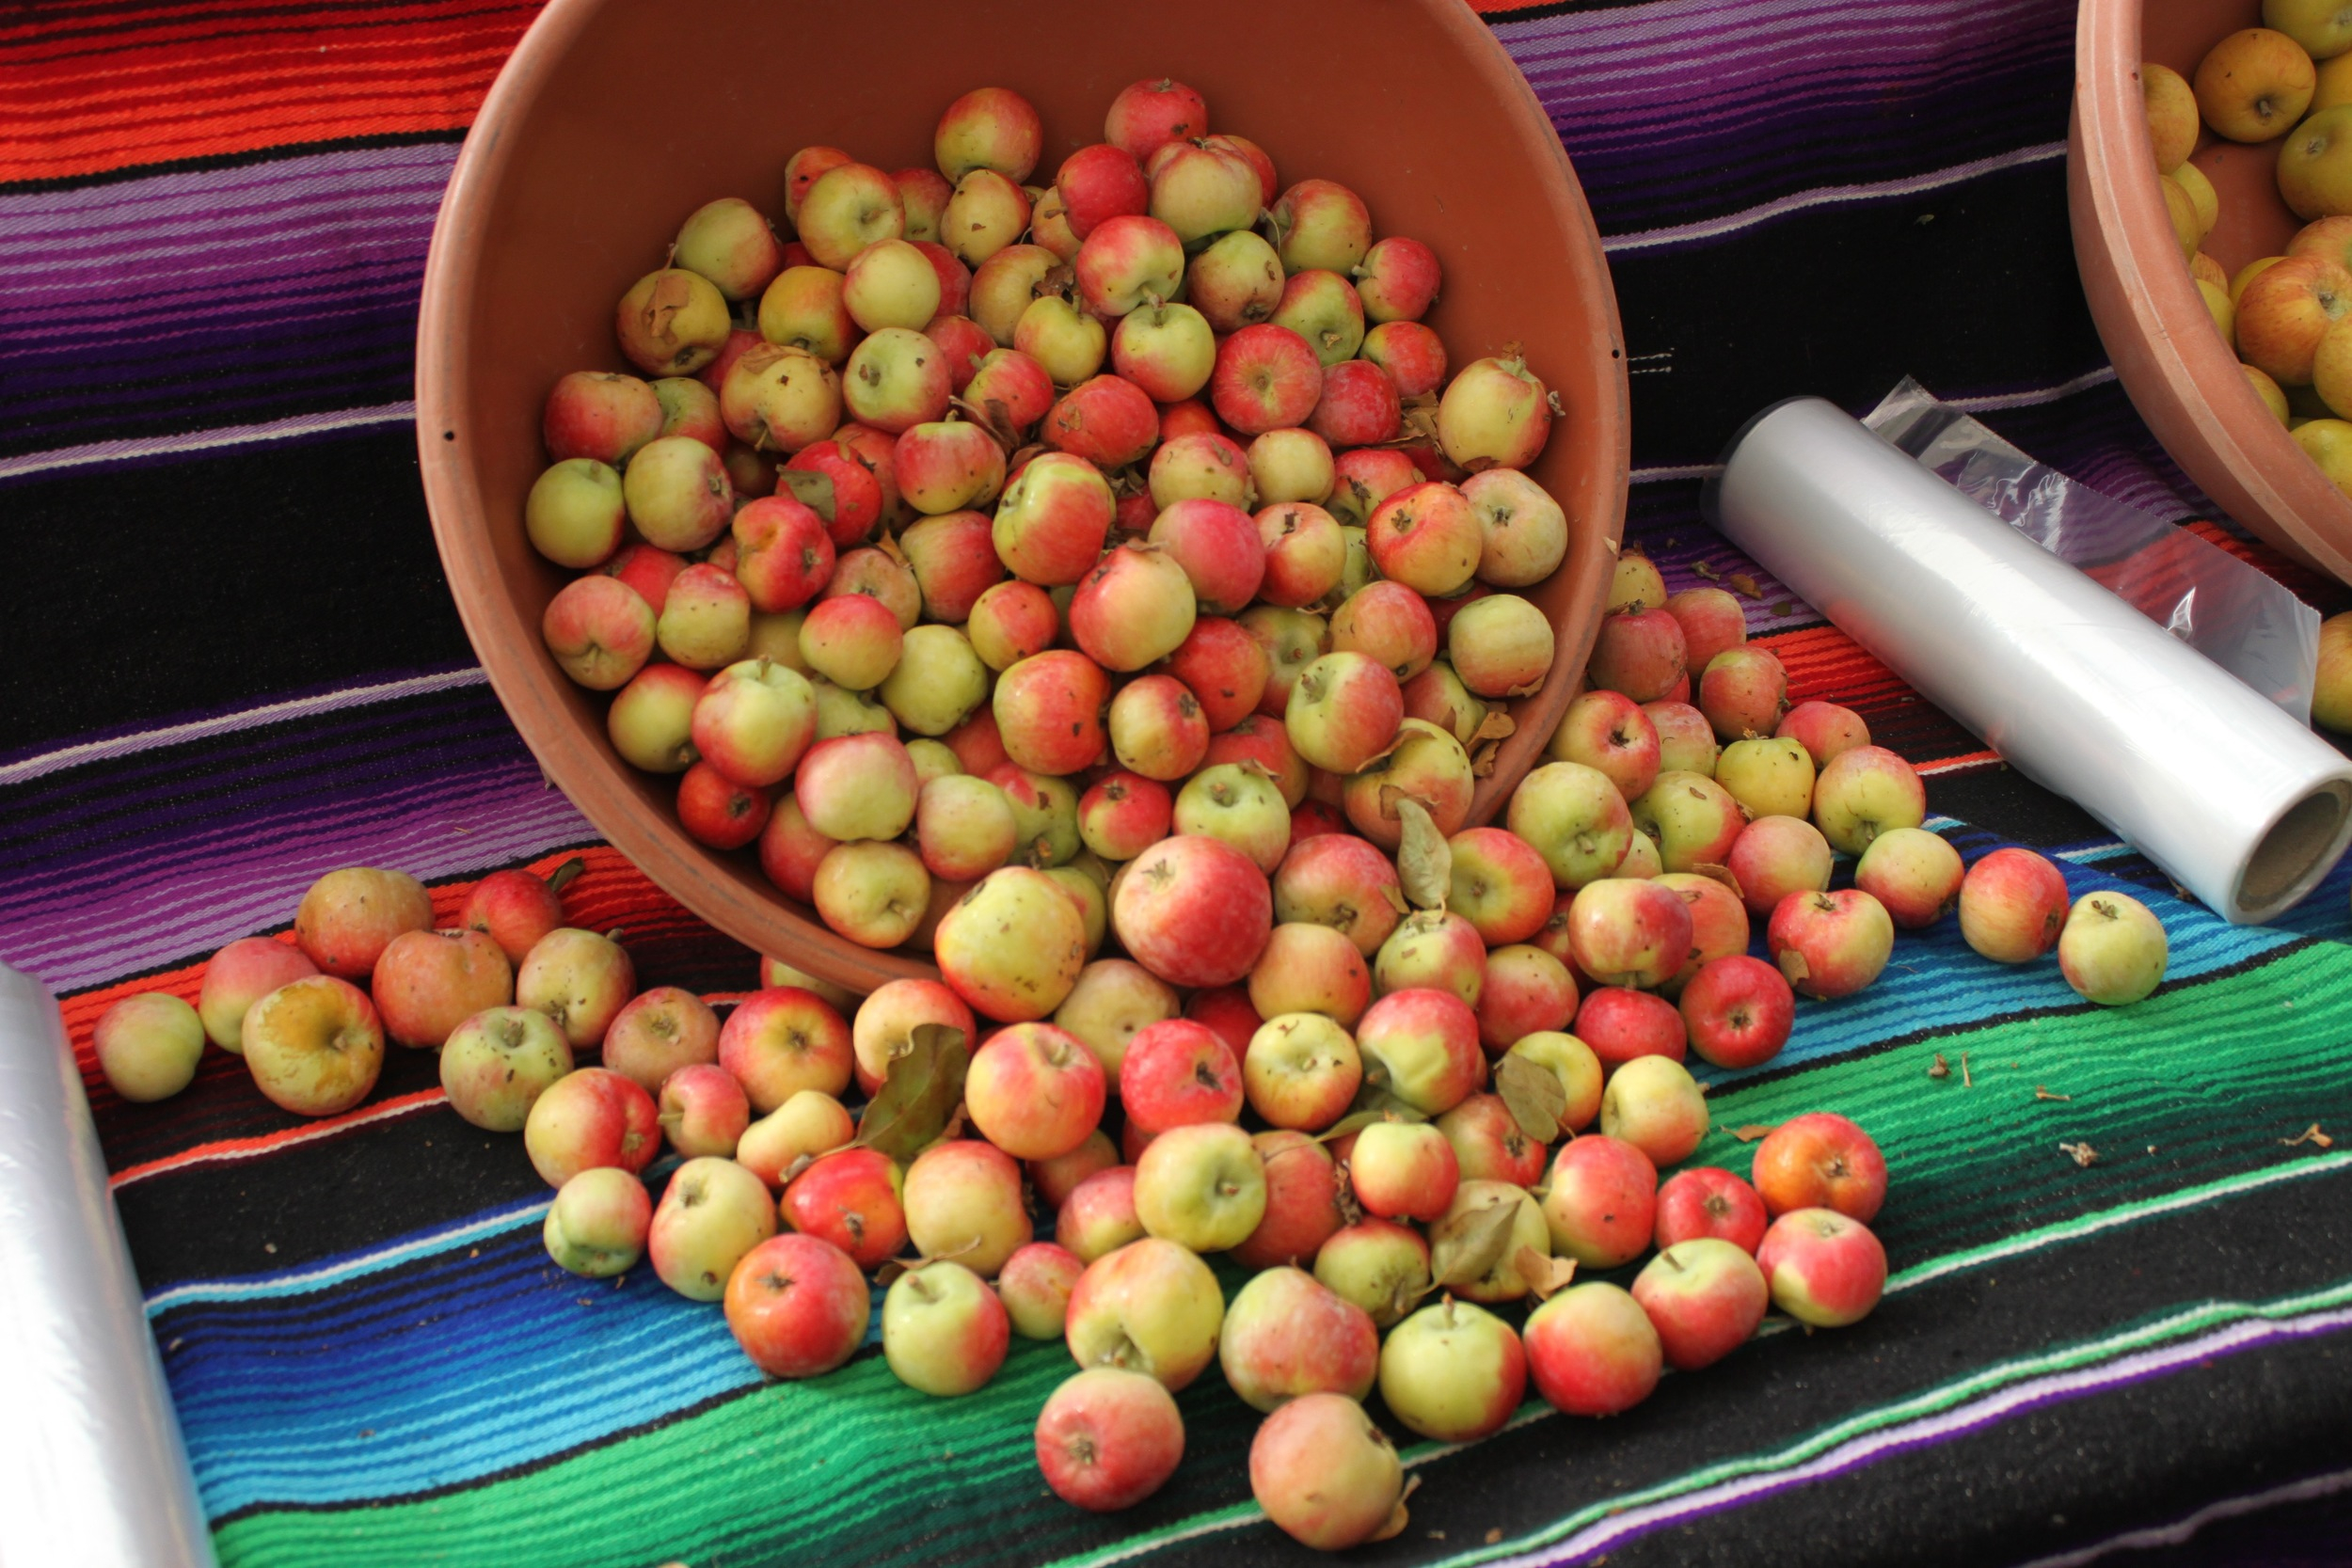 CRAB APPLES FROM THE FARMERS MARKET